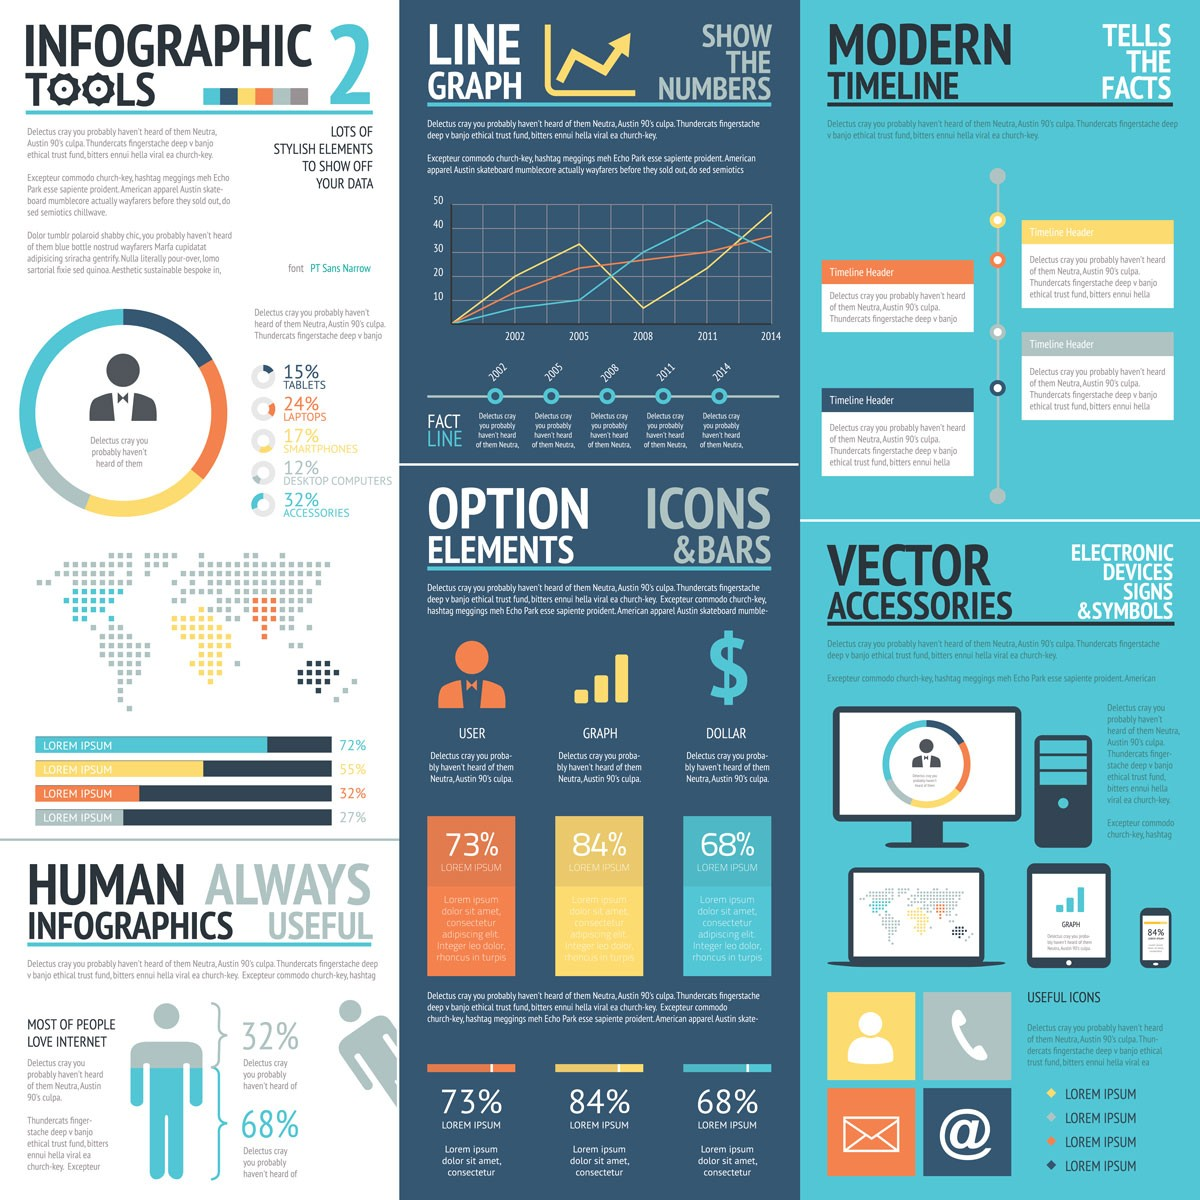 Infographics - Types of Infographics